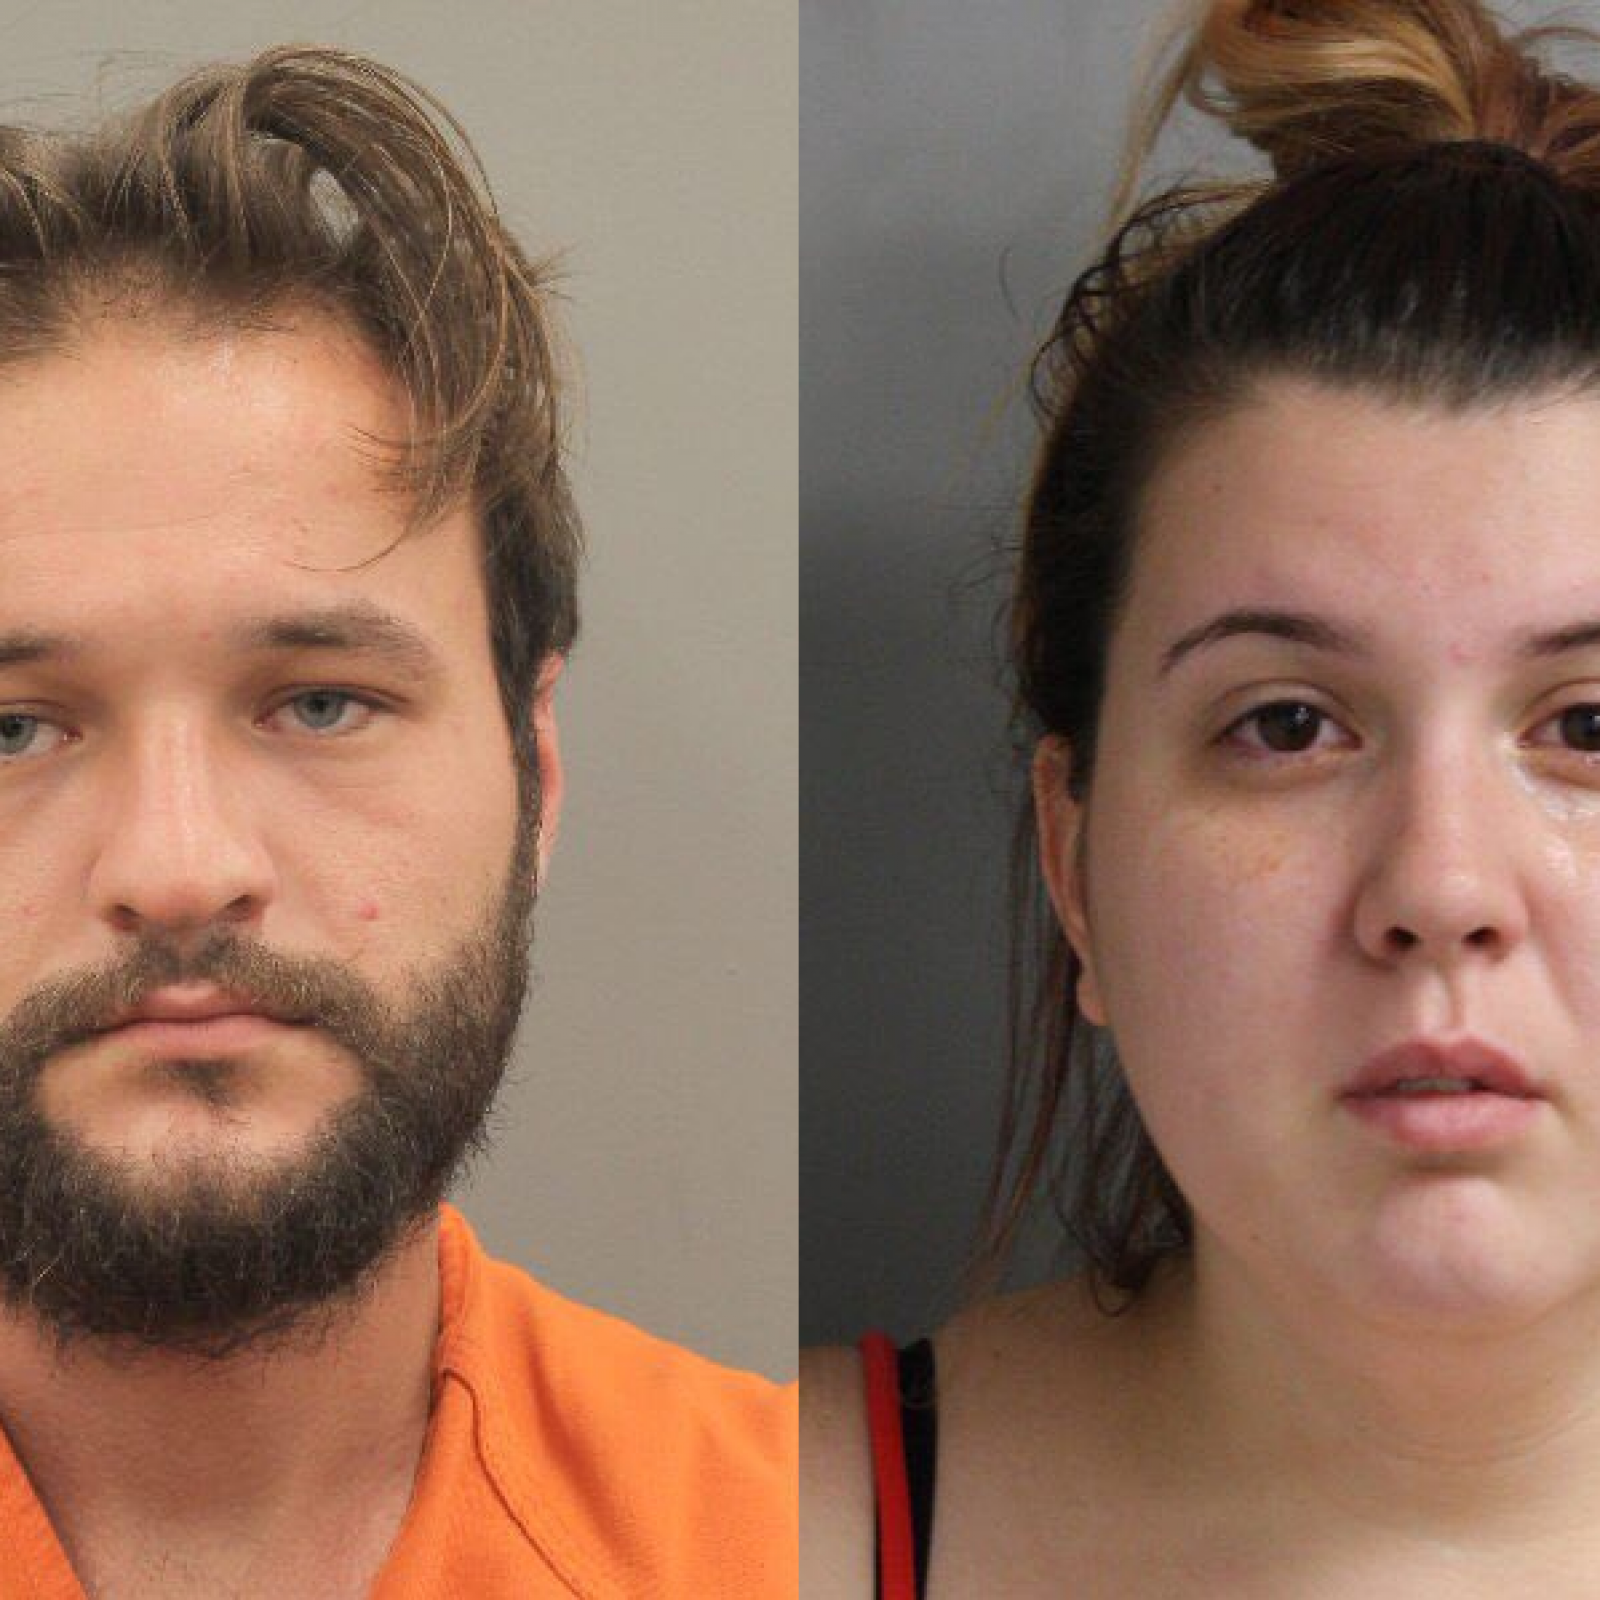 Texas Baby Died With 96 Fractures Throughout Body, Parents